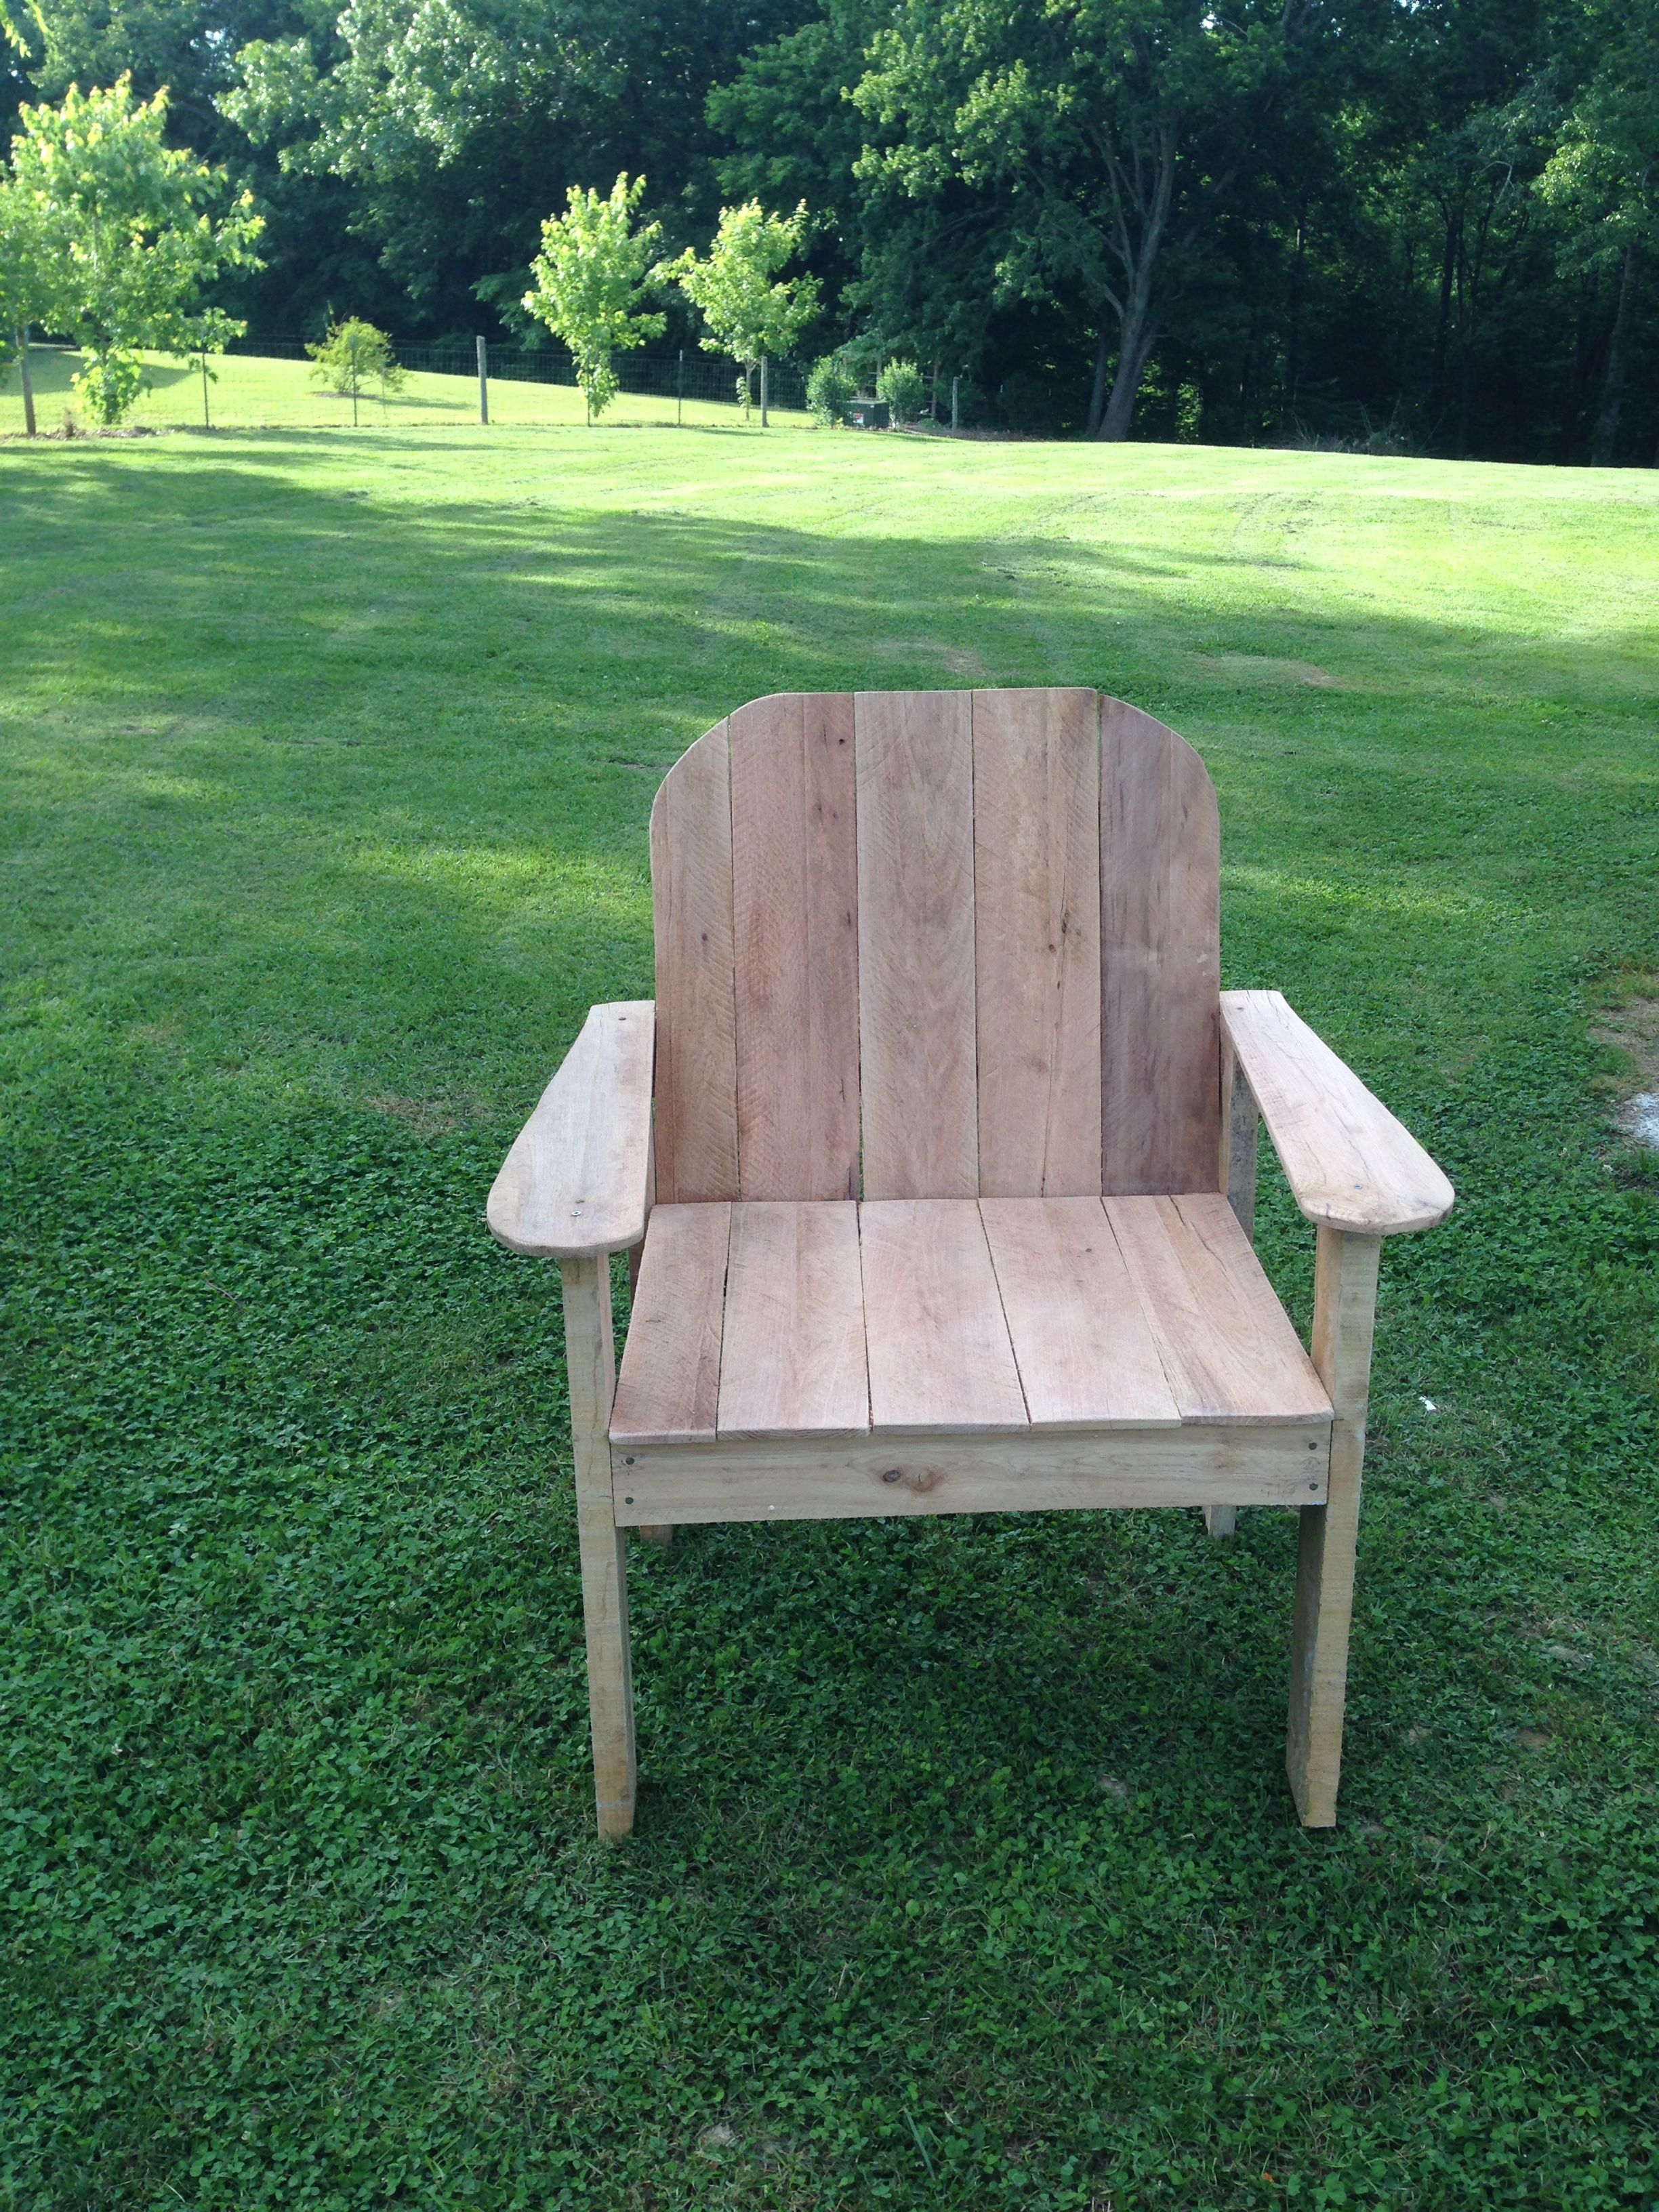 Lawn chair made from recycled pallet wood.